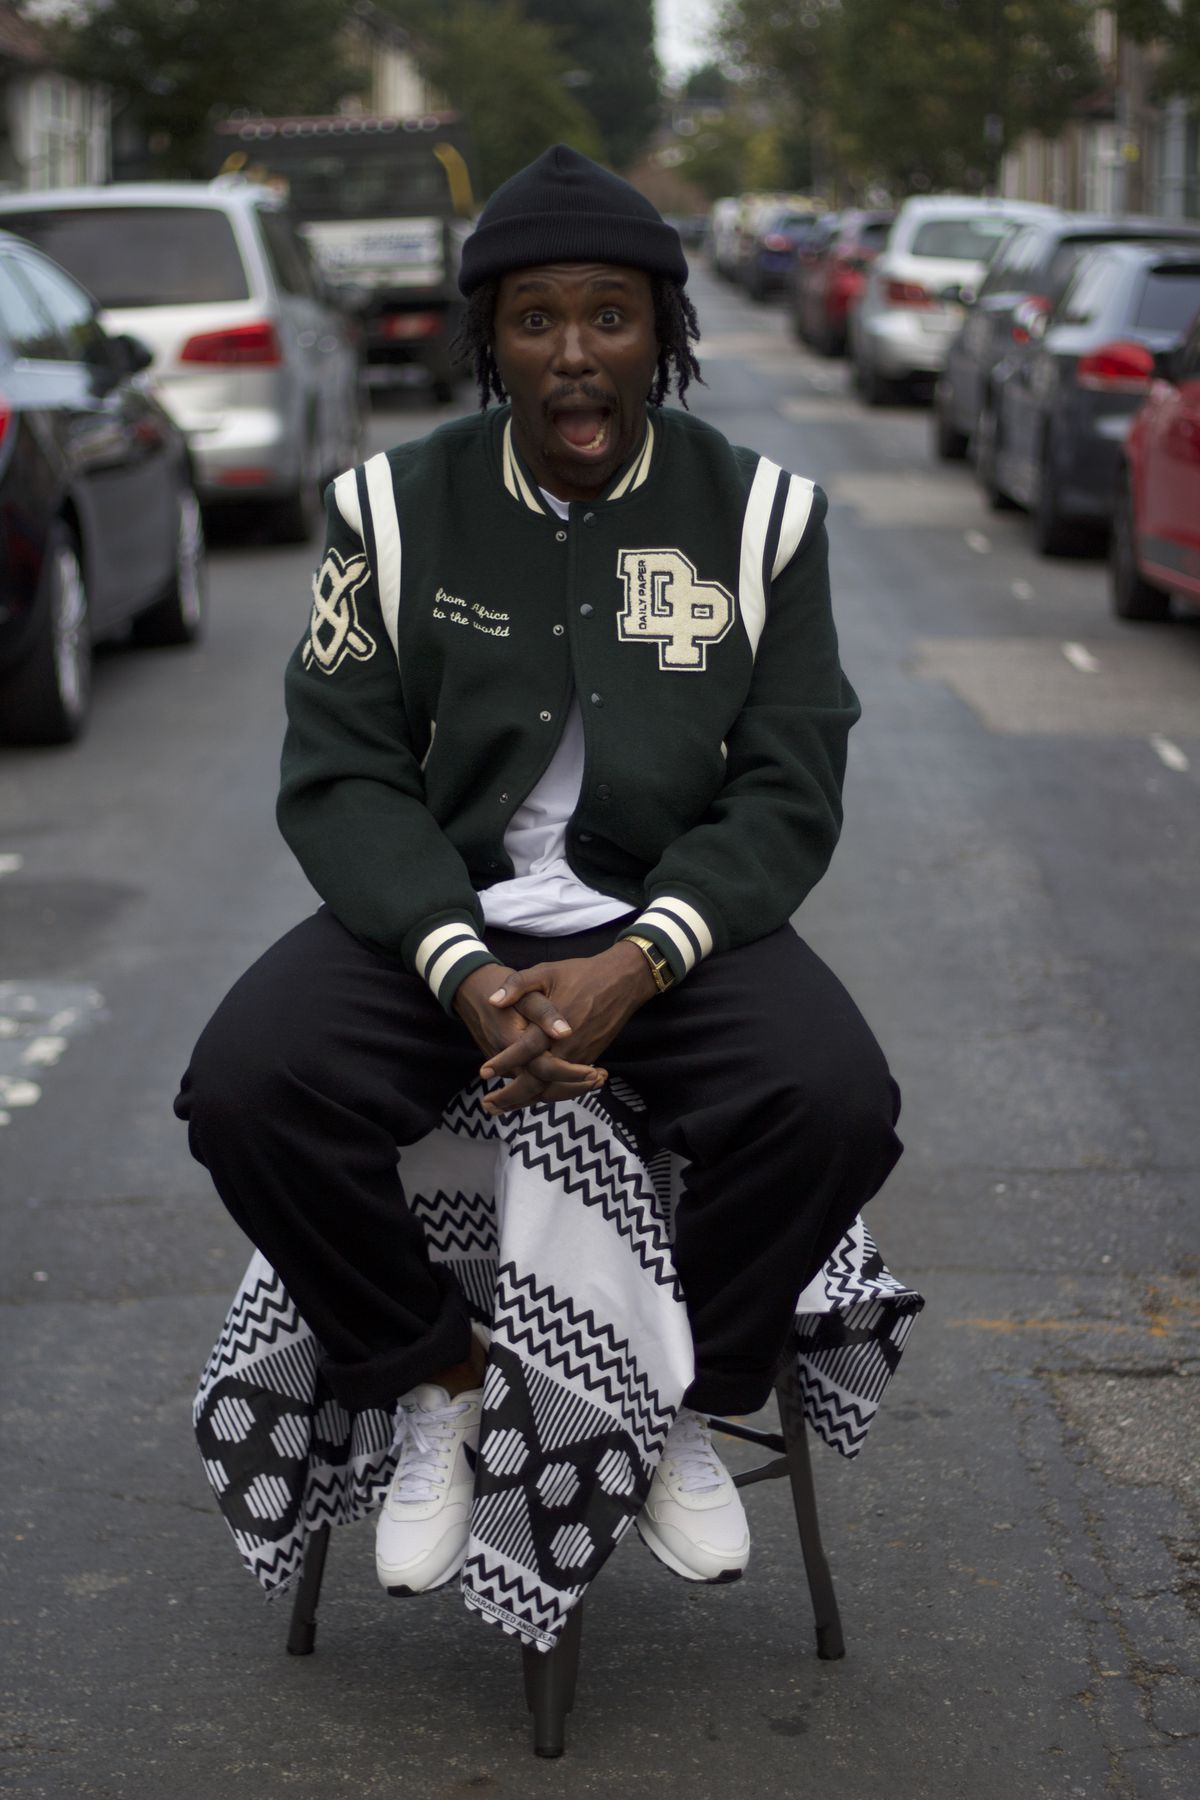 Akwasi Brenya-Mensa, smiling widely while sitting on a table in the middle of a road